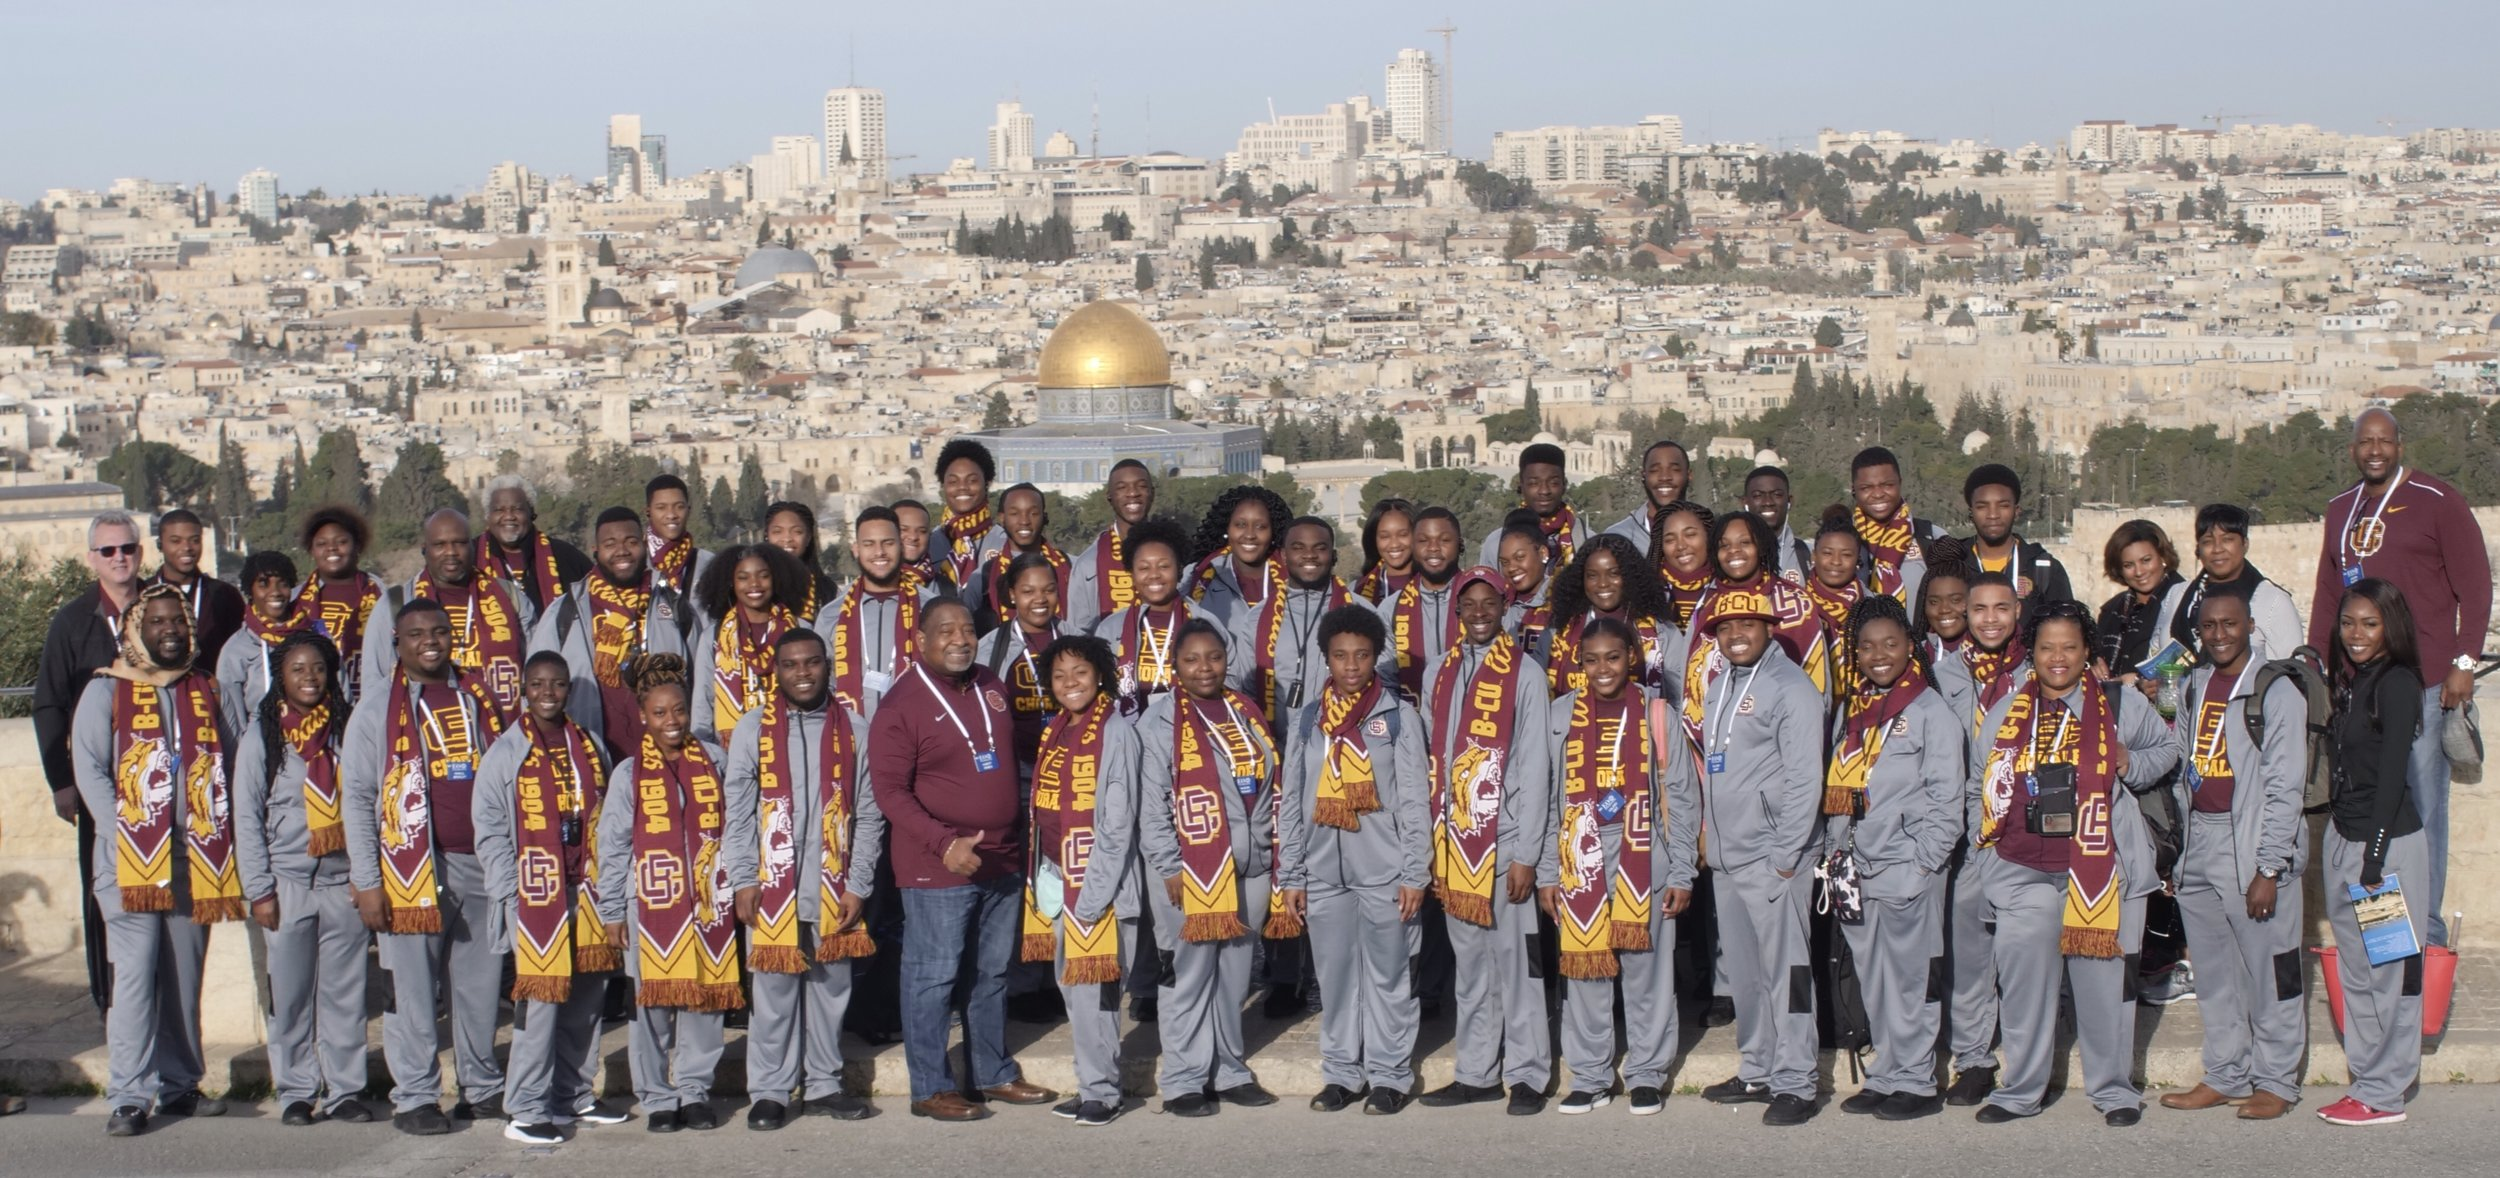 Concert Chorale Tour of Israel